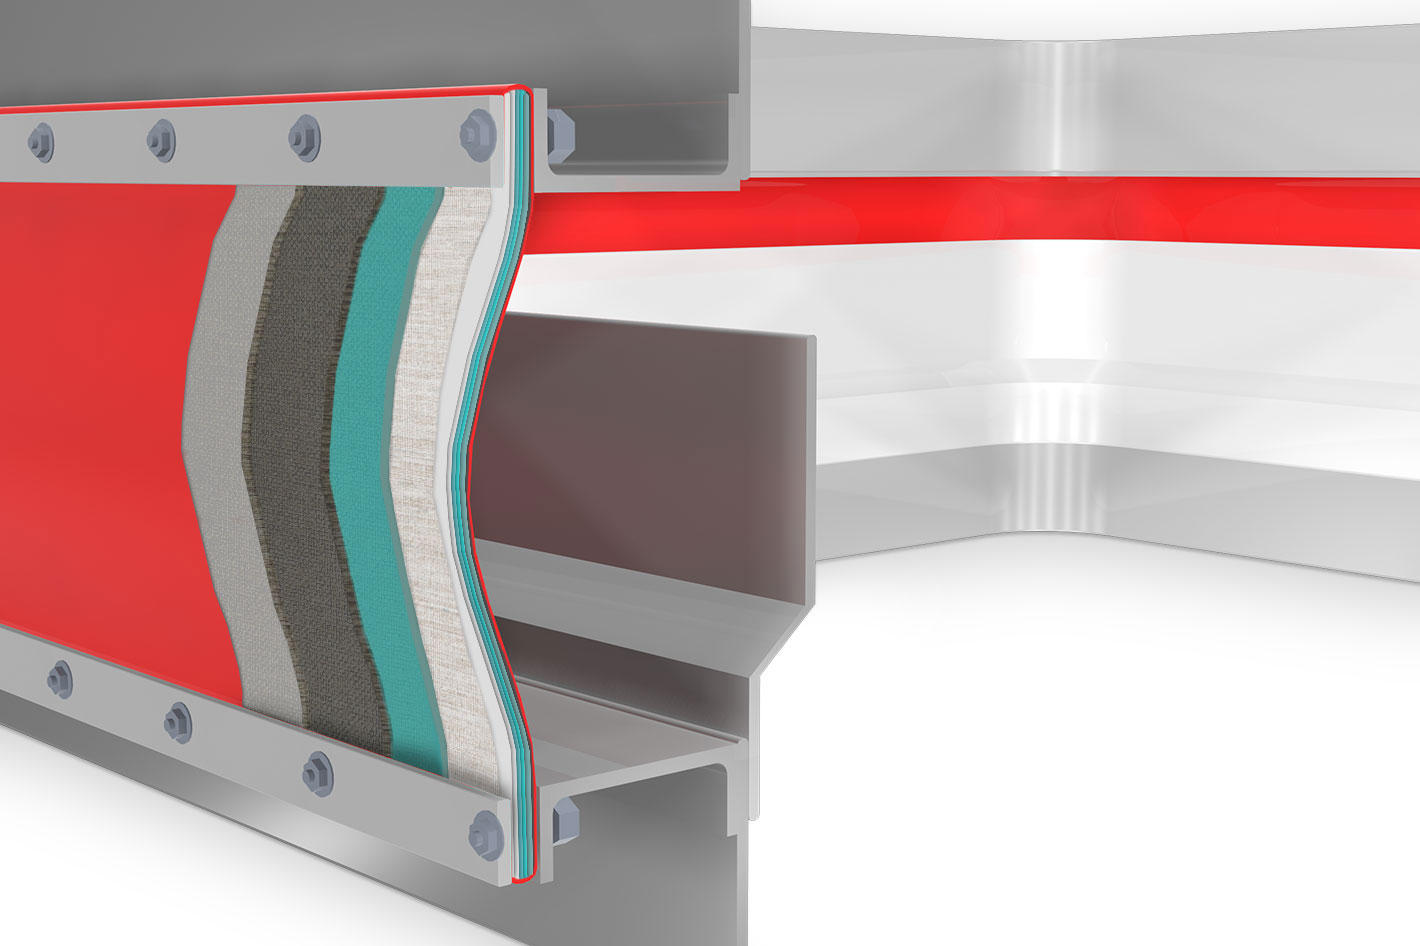 Fabric expansion joint profile 7: Showing the layers